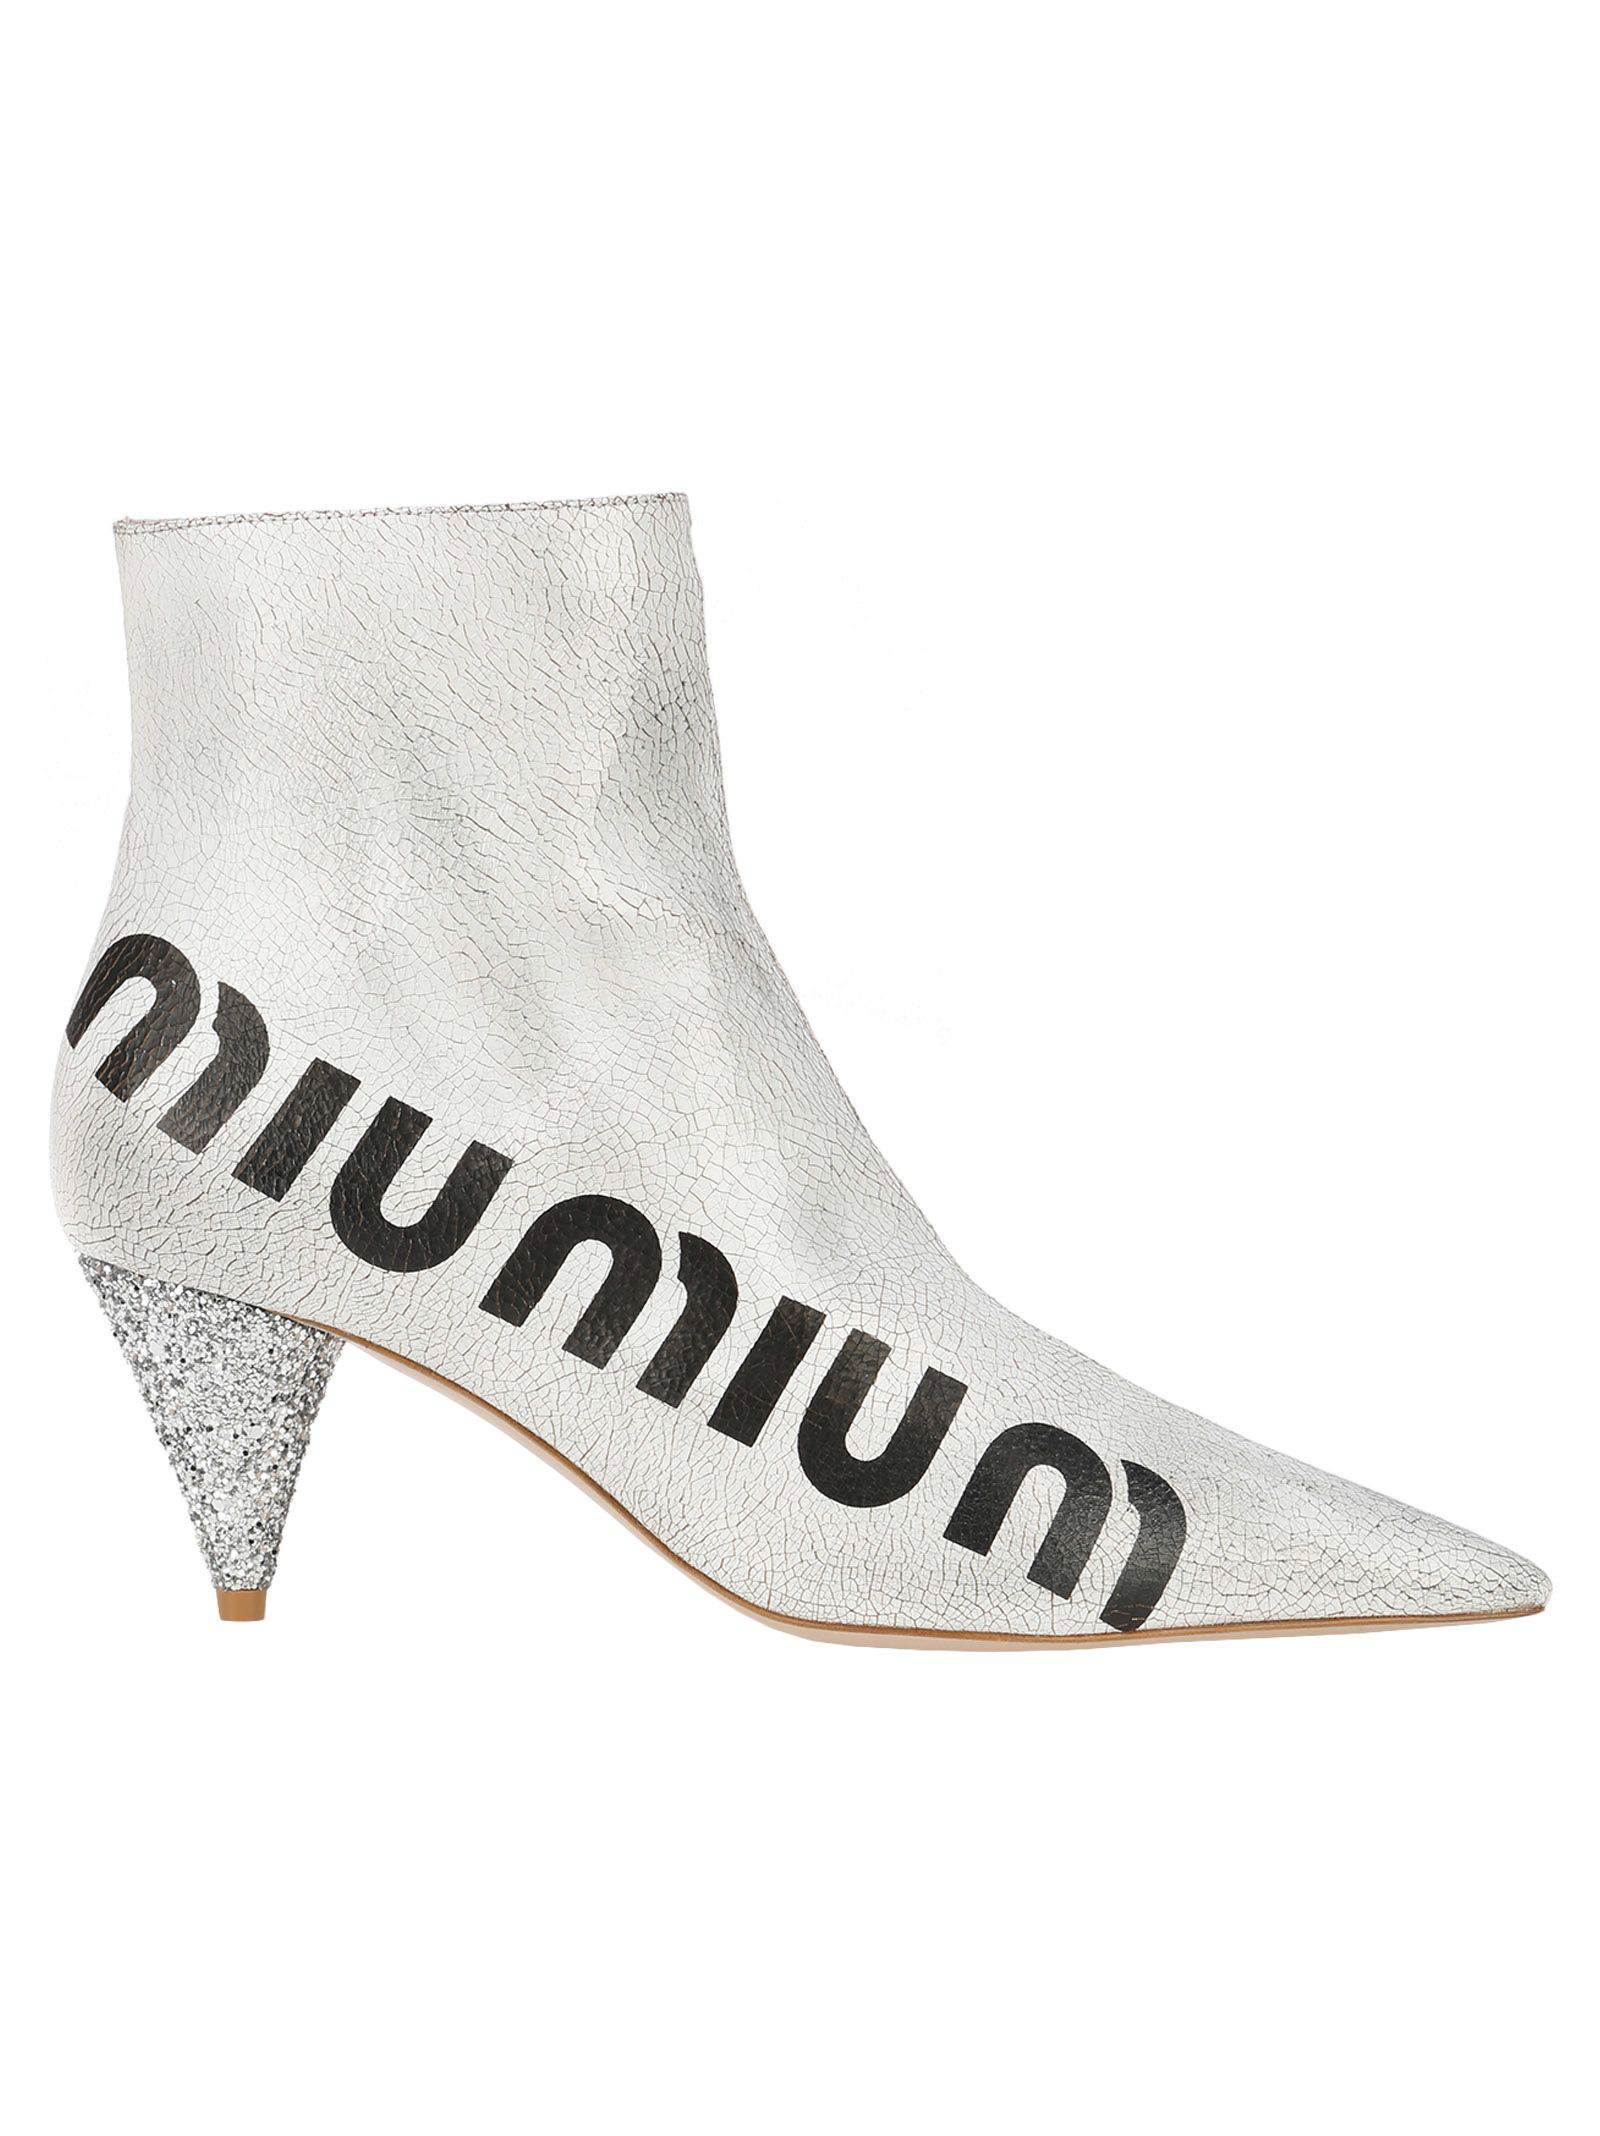 67ea7b5352a0 Miu Miu Logo-Print Glossed Cracked-Leather Ankle Boots In White ...